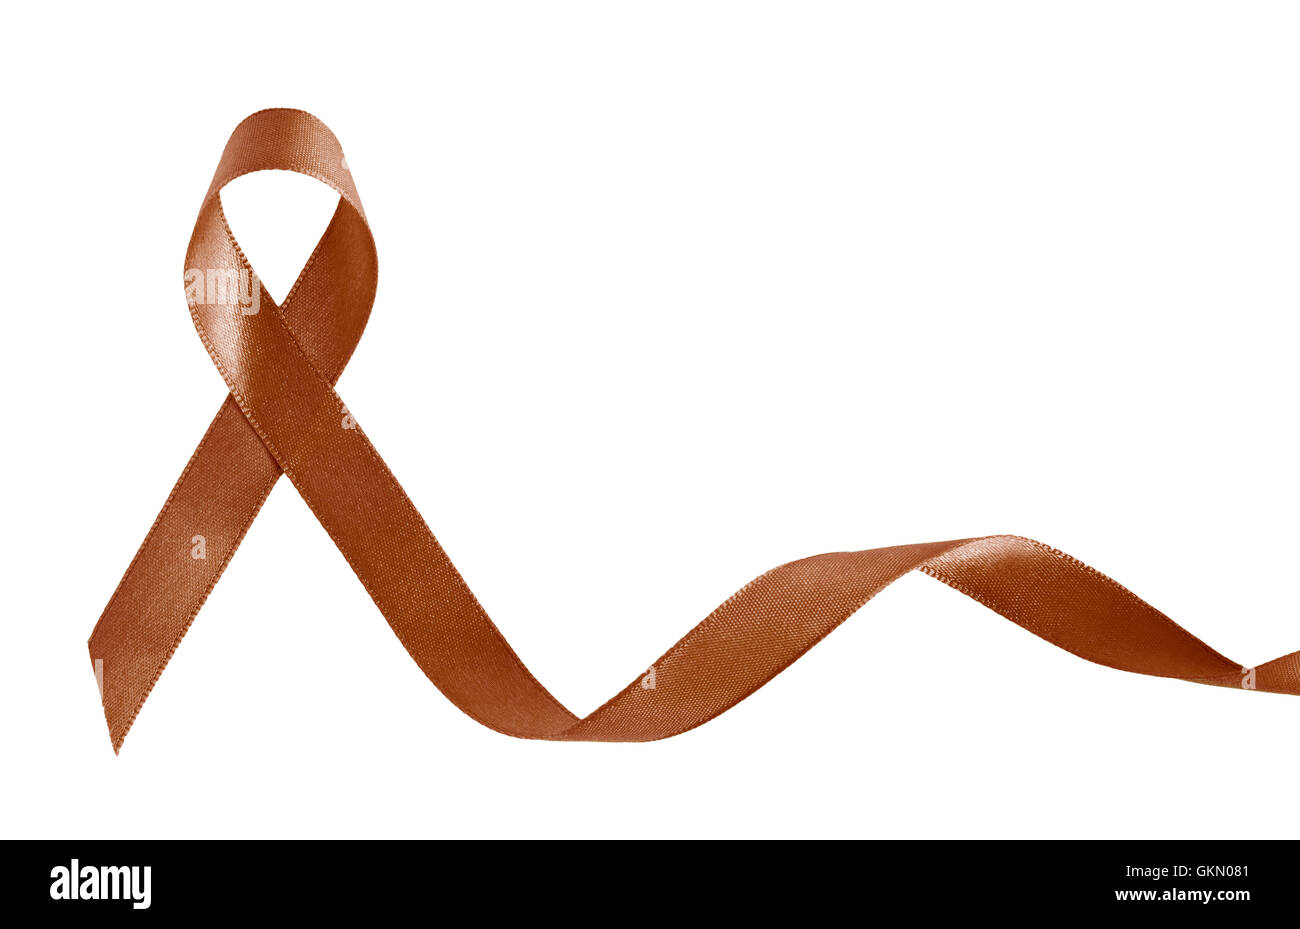 Colon Cancer Stock Photos & Colon Cancer Stock Images